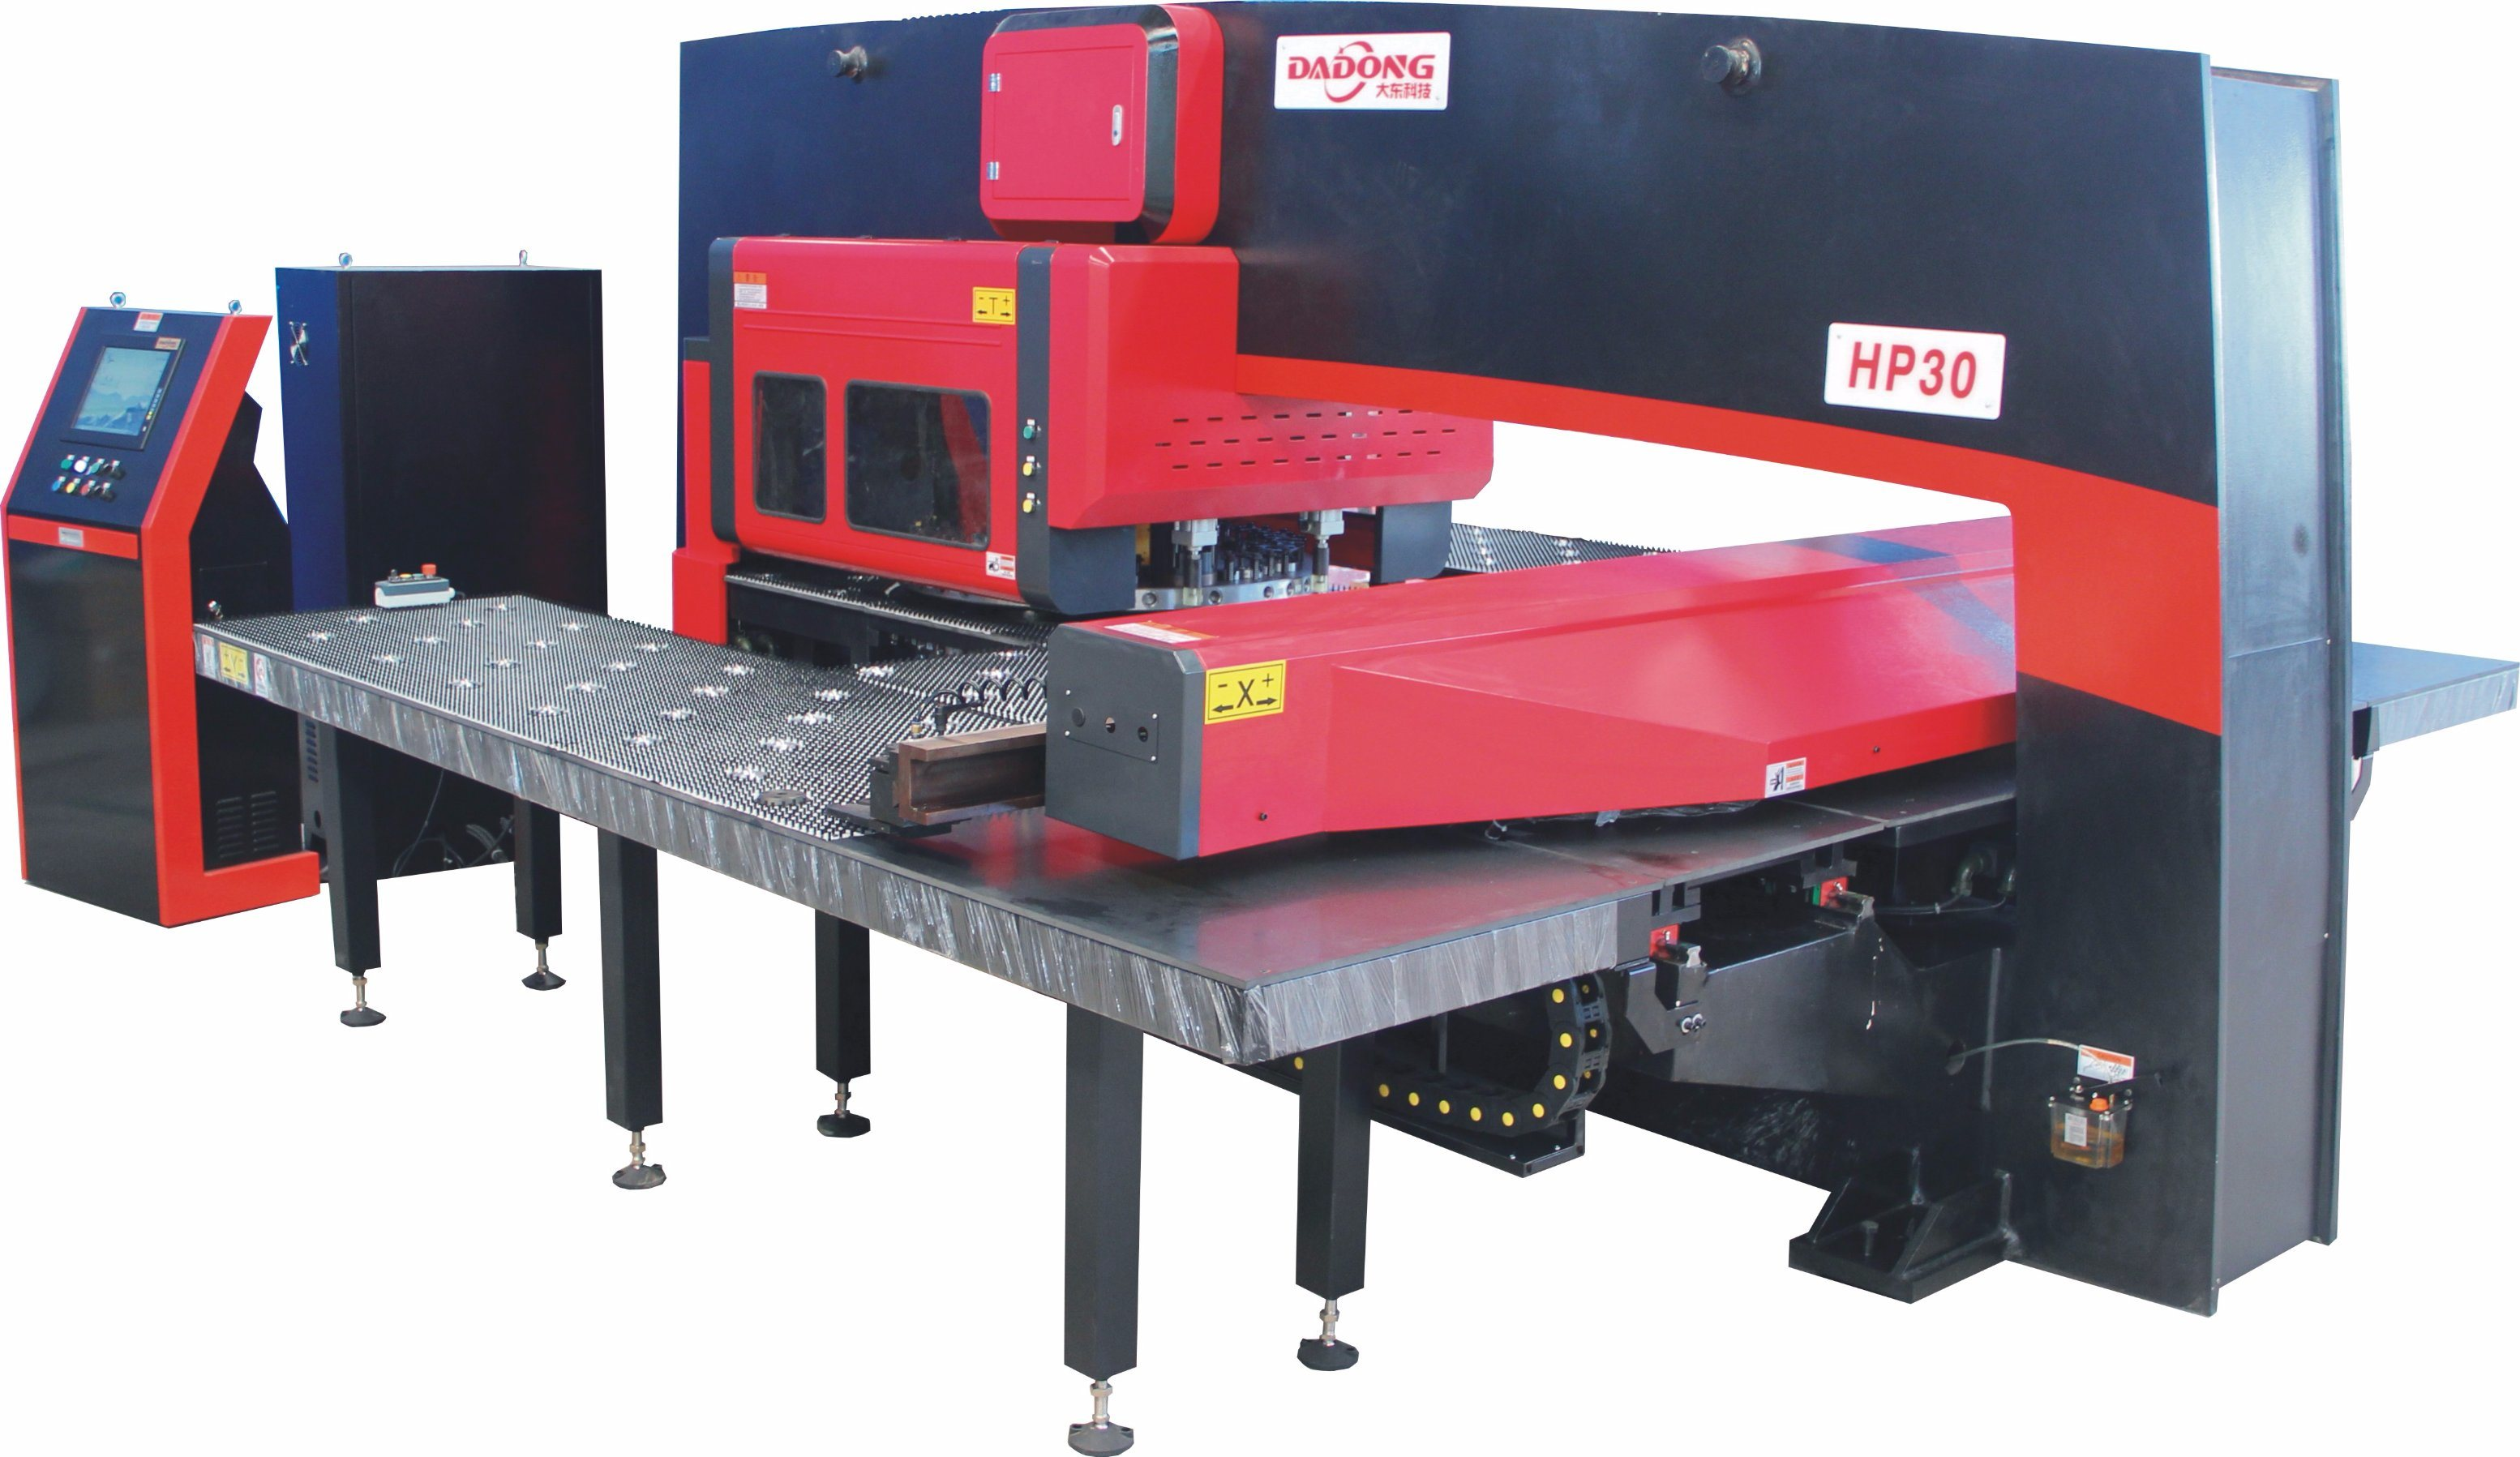 HP30 Metal Sheet Processing CNC Turret Punching Press Machinery